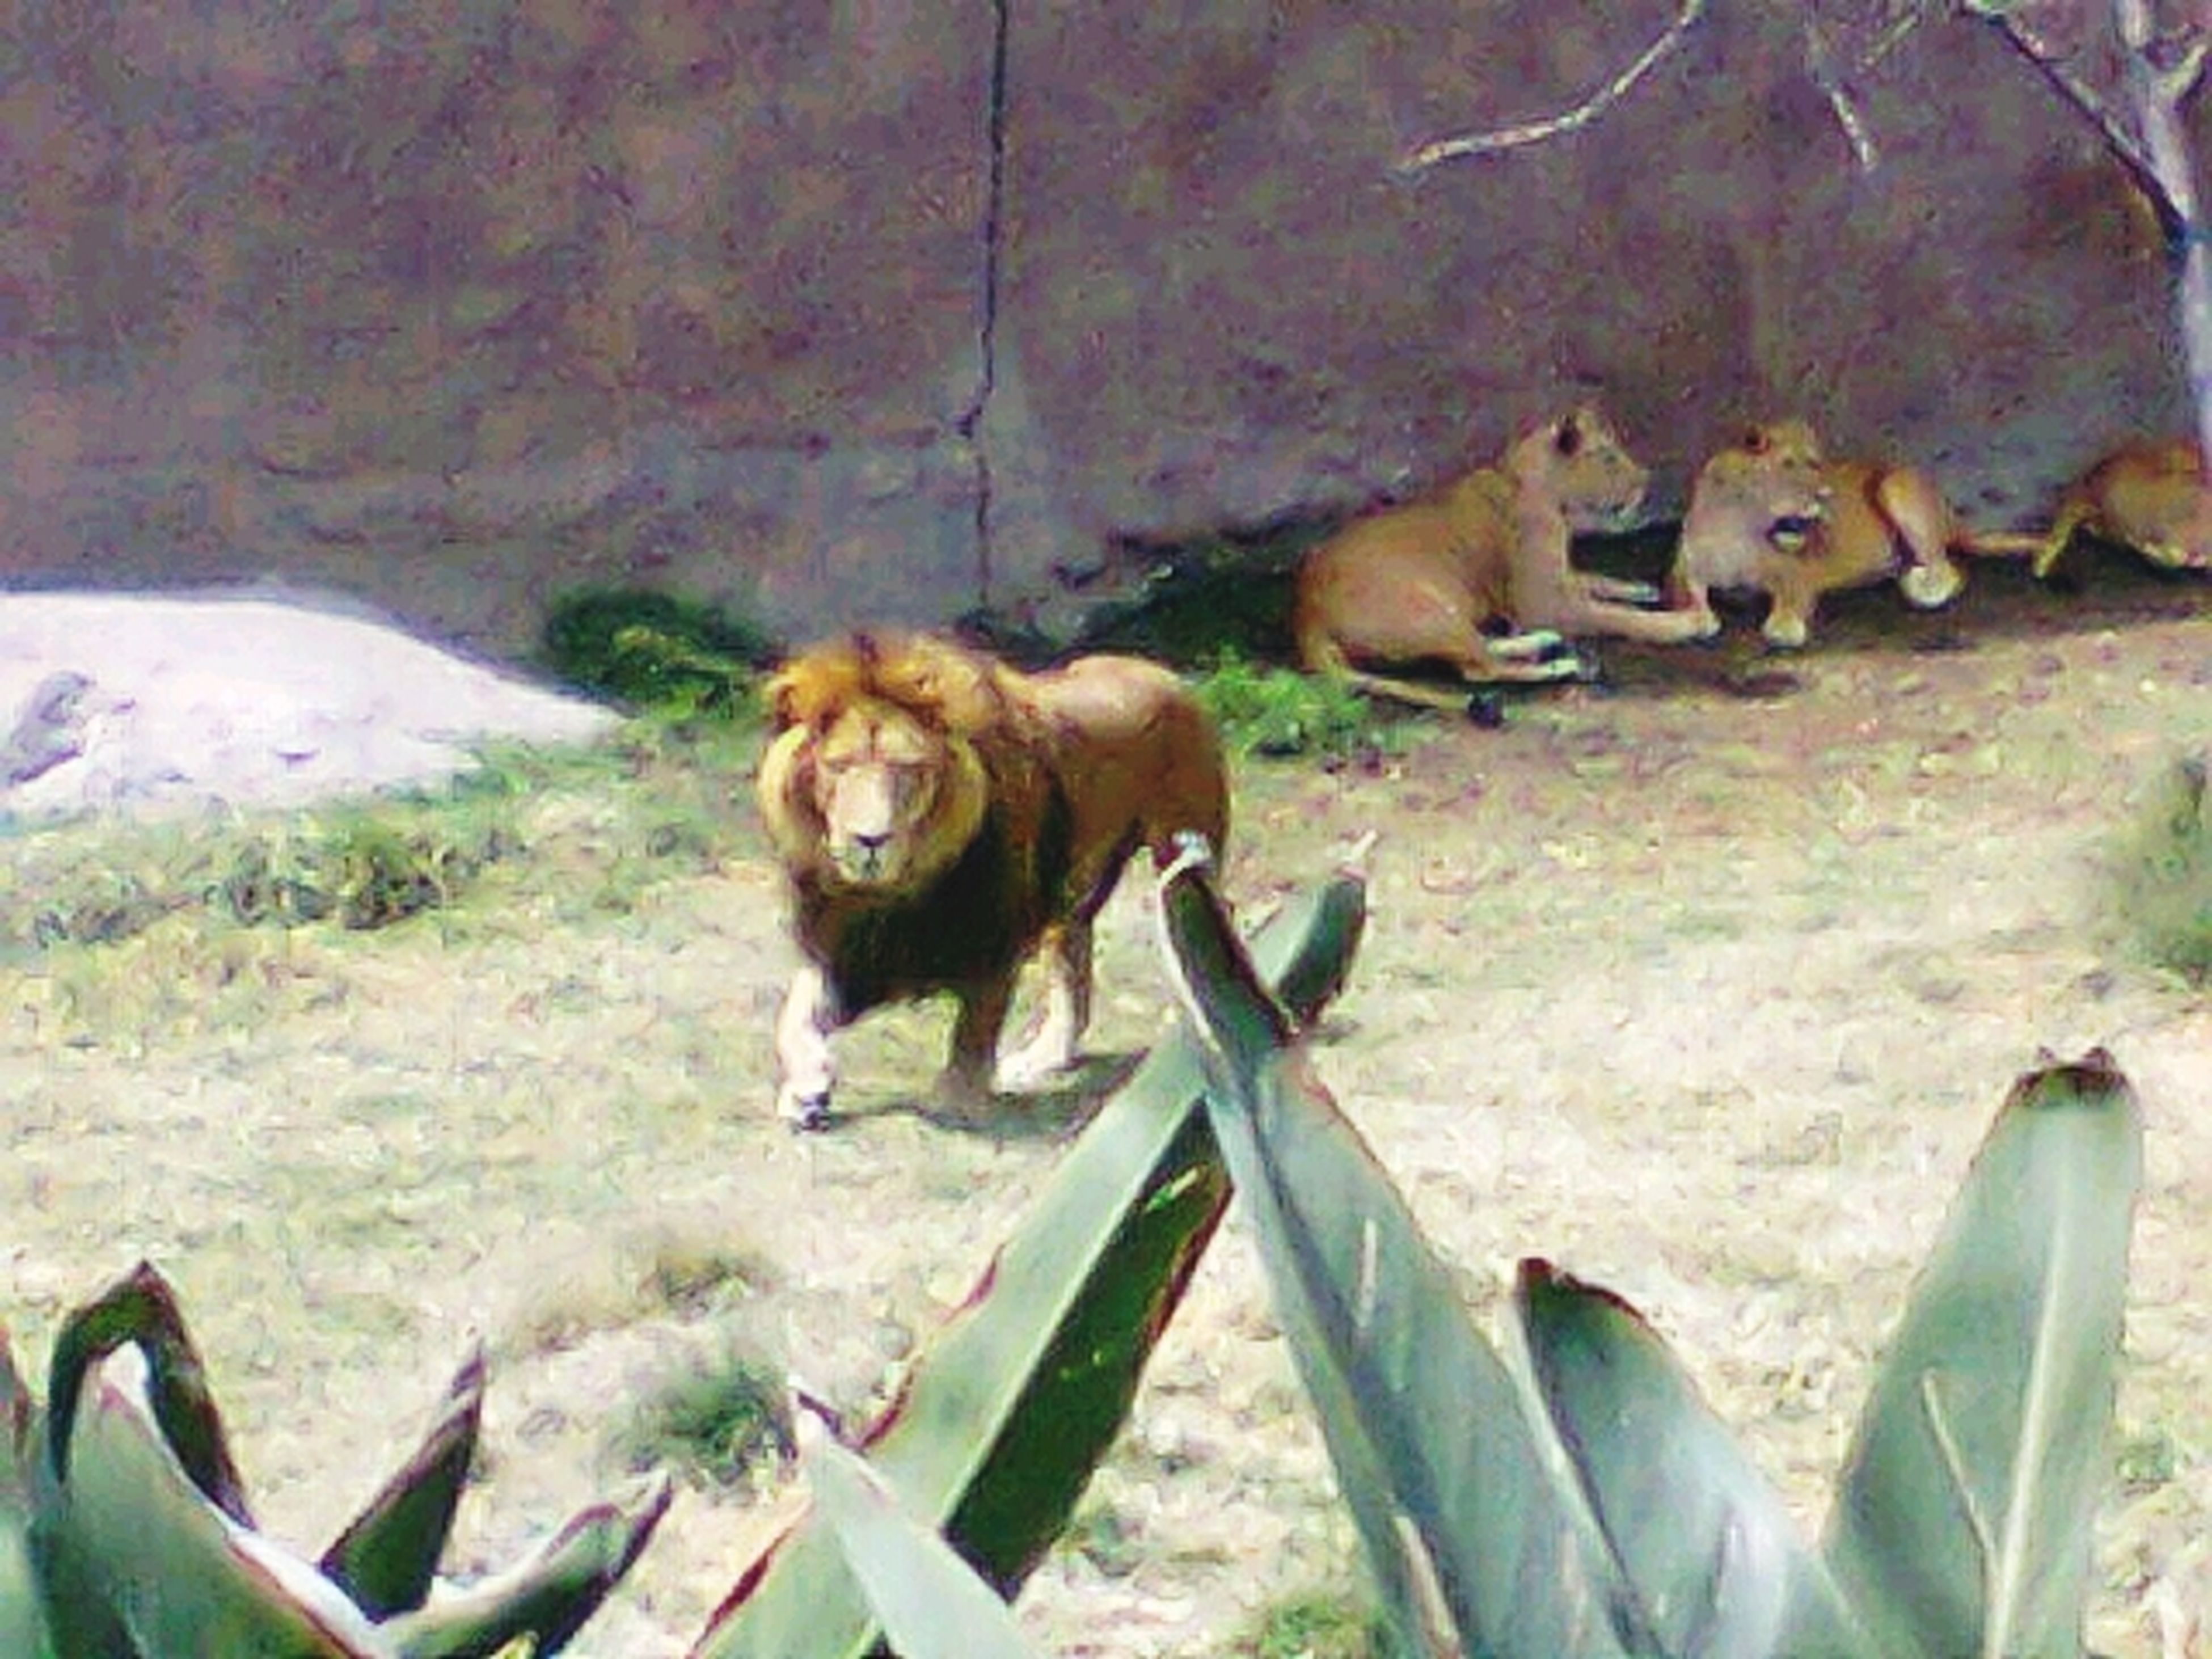 animal themes, mammal, one animal, domestic animals, animals in the wild, wildlife, high angle view, no people, grass, day, outdoors, fence, field, two animals, nature, plant, relaxation, animals in captivity, zoo, side view